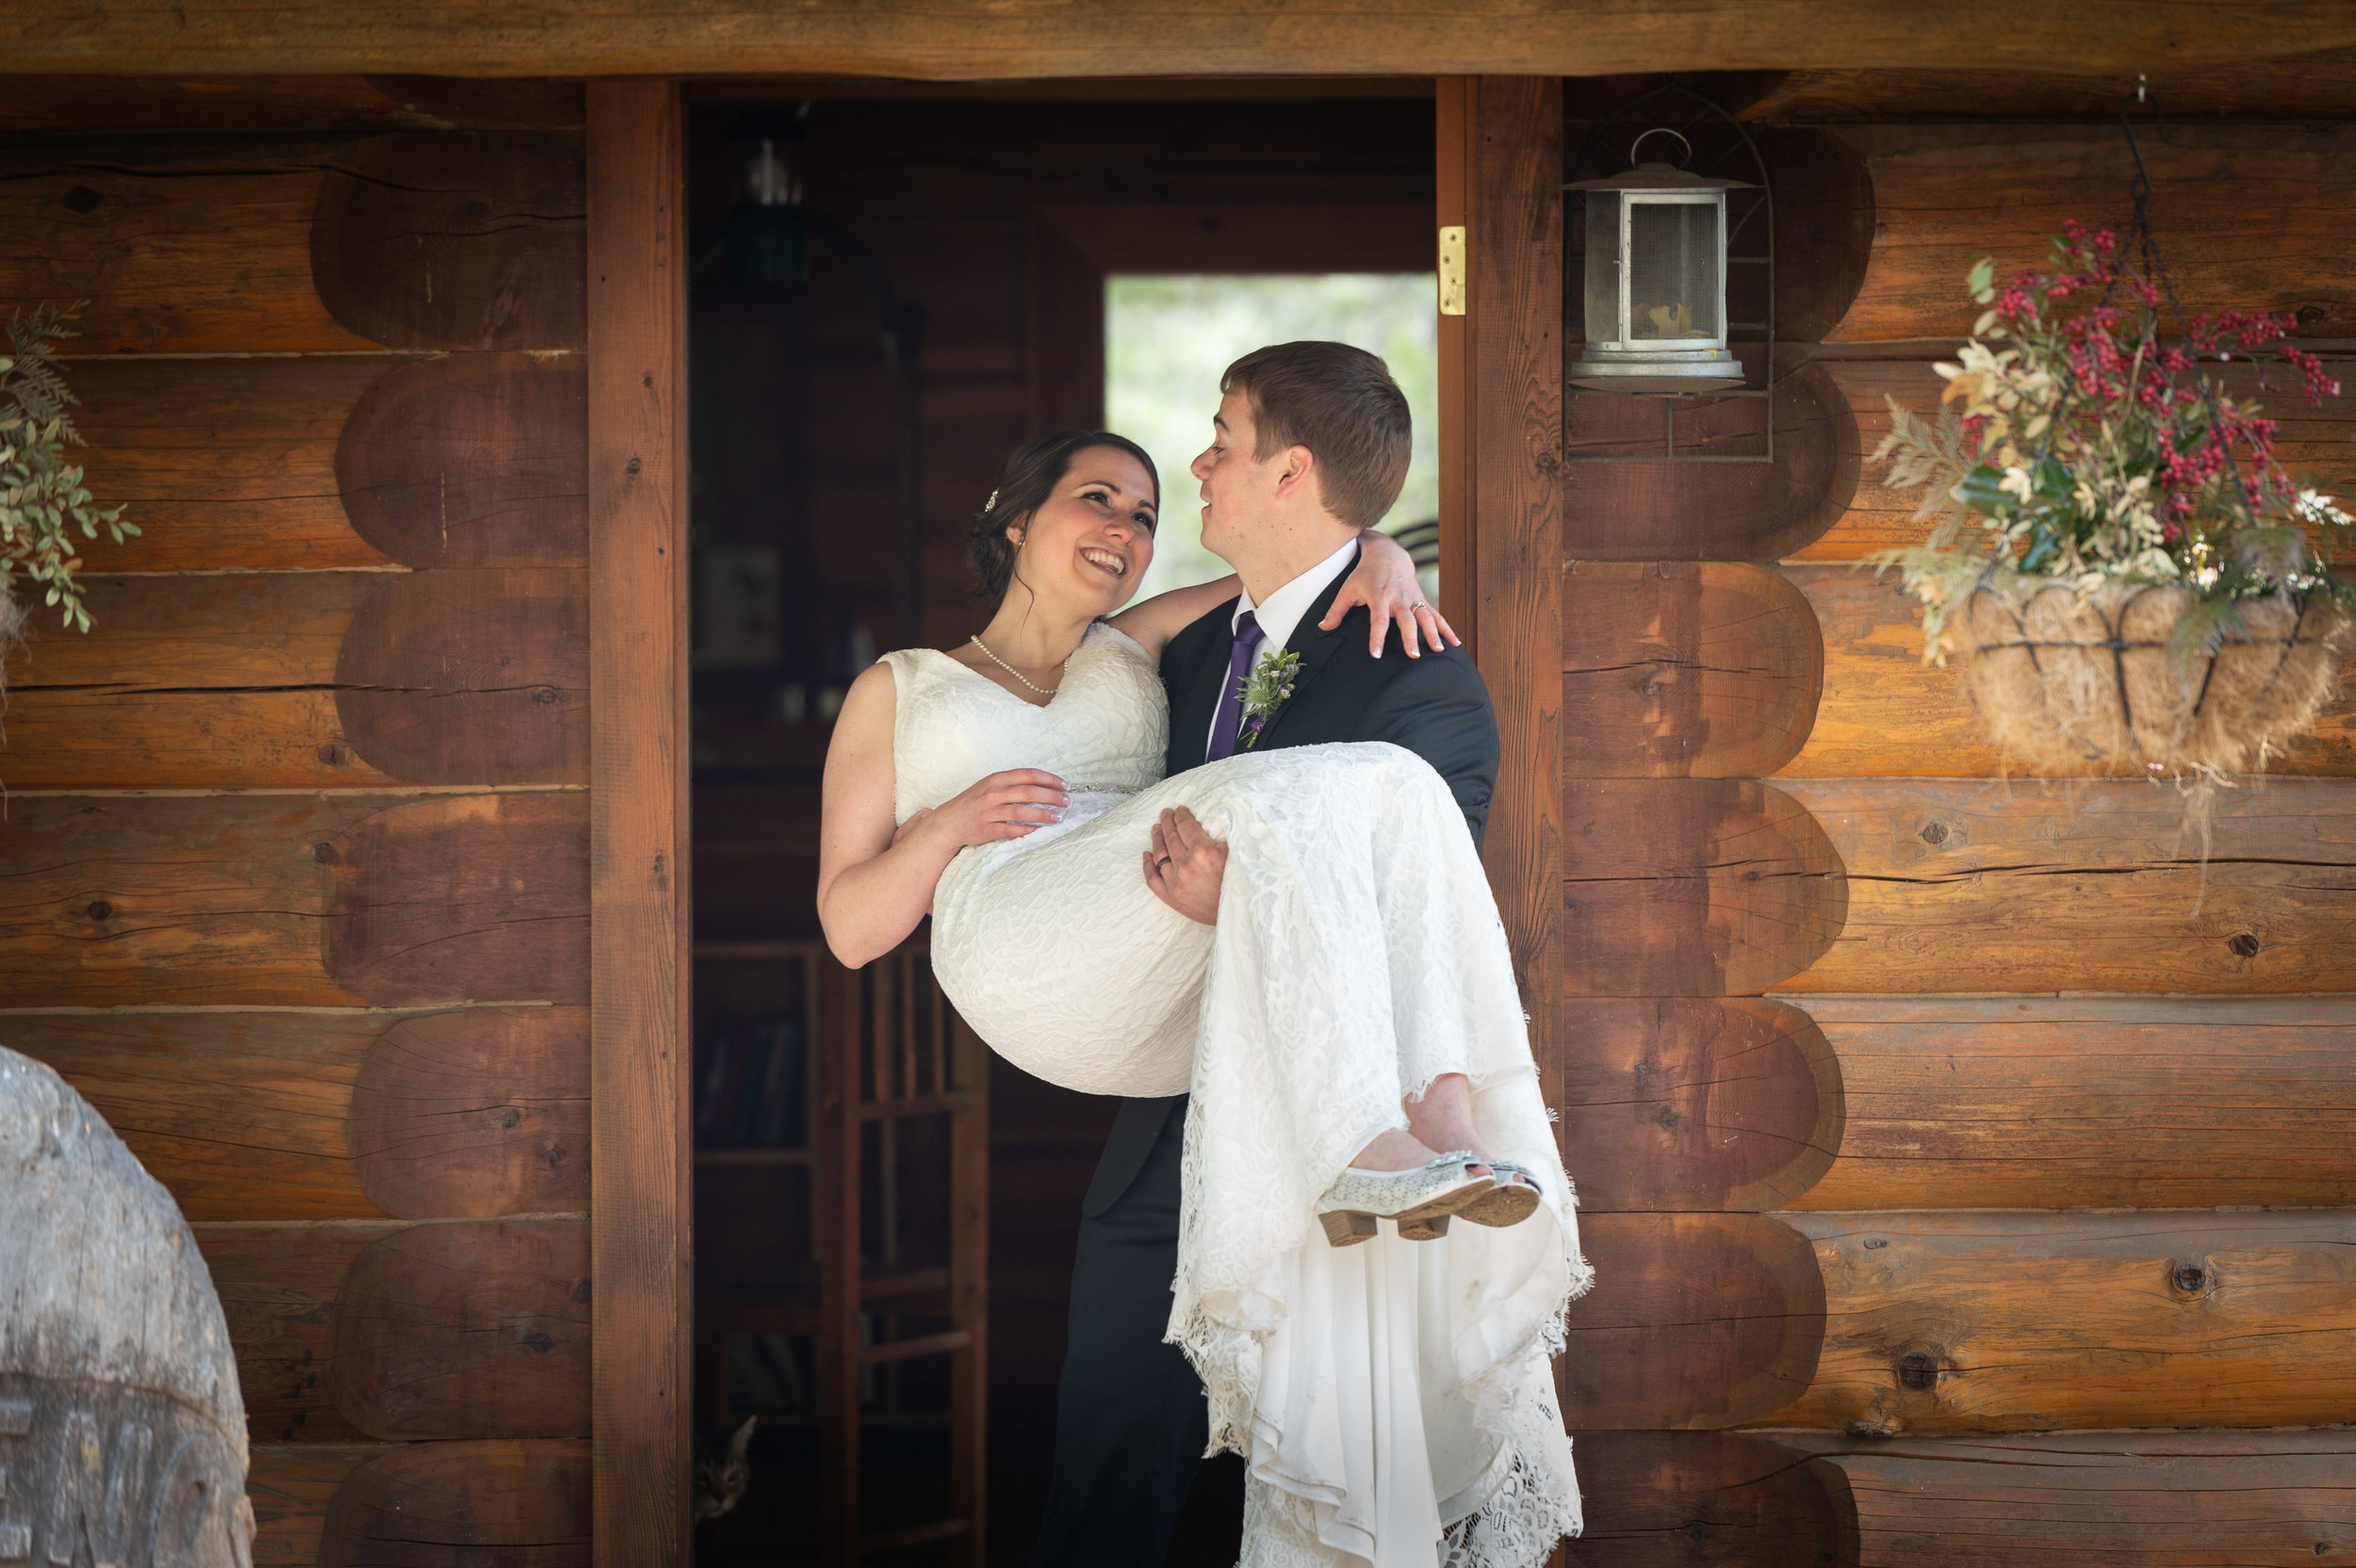 Romantic Elopement at Tin Poppy Retreat in British Columbia 11.jpg